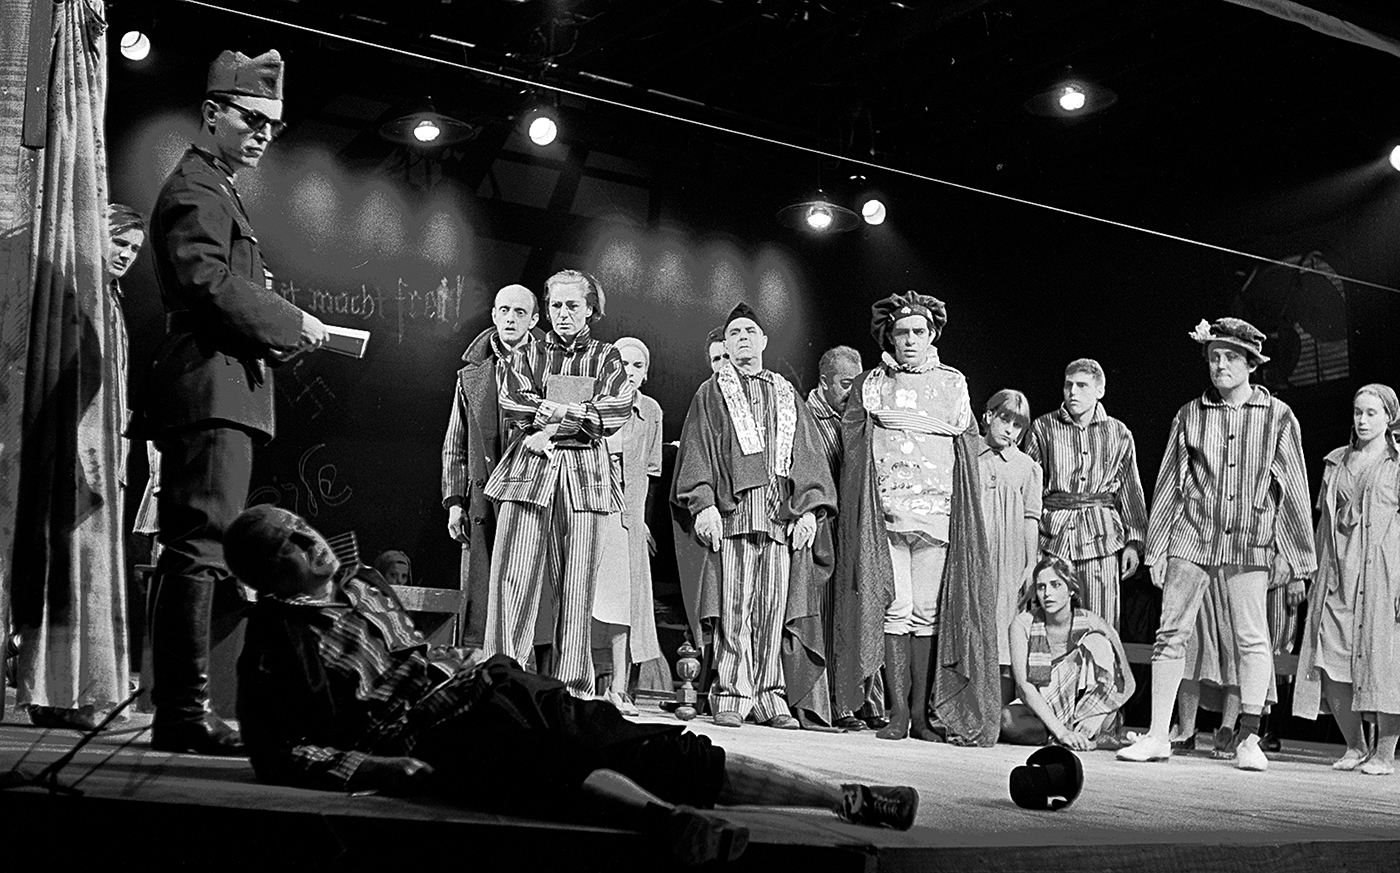 Stockbridge: Summer 1966, A memoir of the Berkshire Theatre Festival's inaugural season — Part II (of 3): George Tabori's Production of The Merchant of Venice, set in a Nazi concentration camp